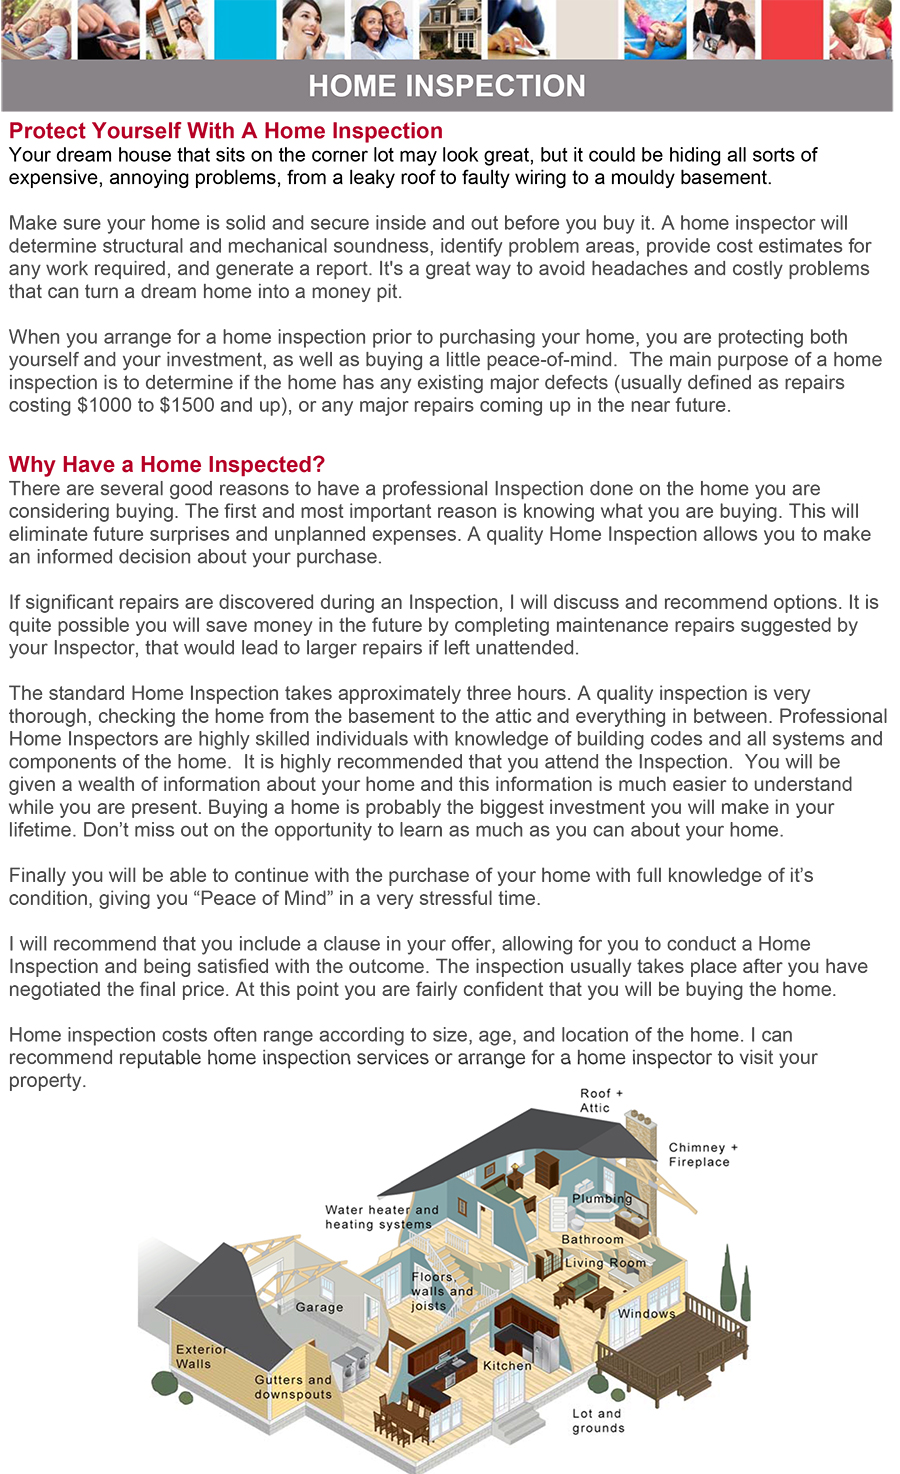 Buying A Home - Get A Home Inspection